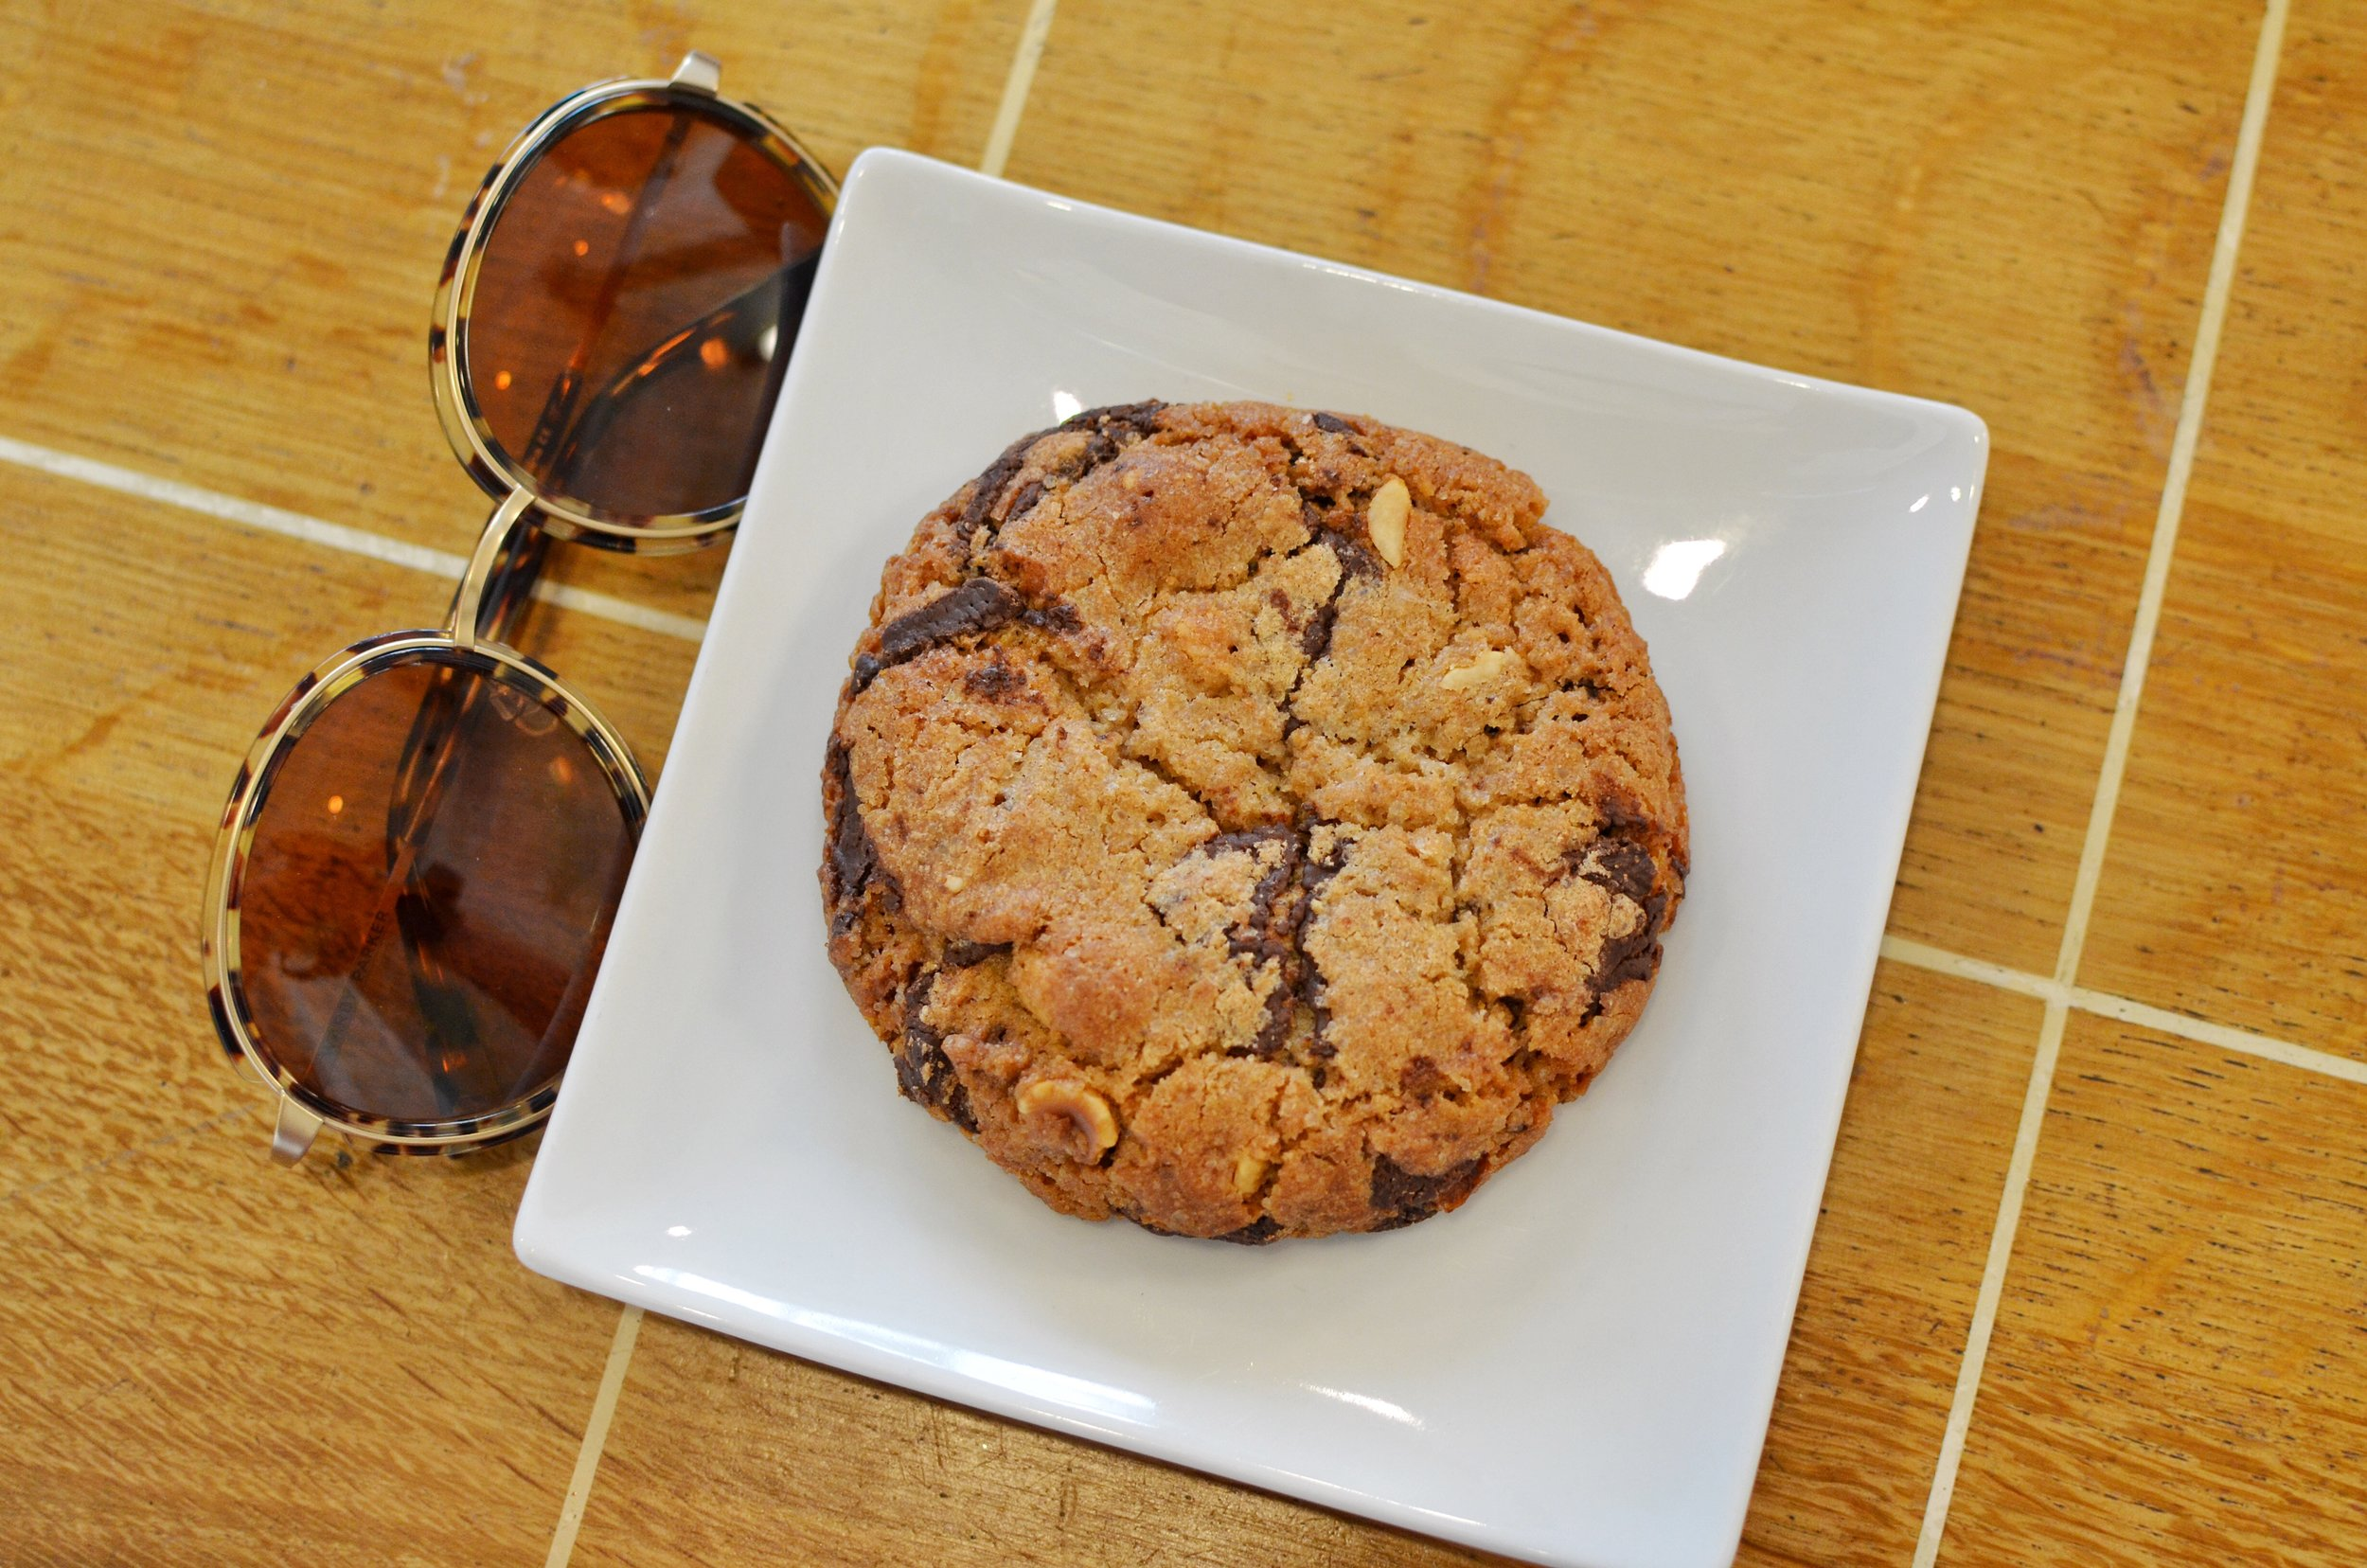 Chocolate walnut cookie- This cookie had the perfect amount of sweetness to saltiness (due to the nuts)which I loved since it was the first thing I ate that morning.